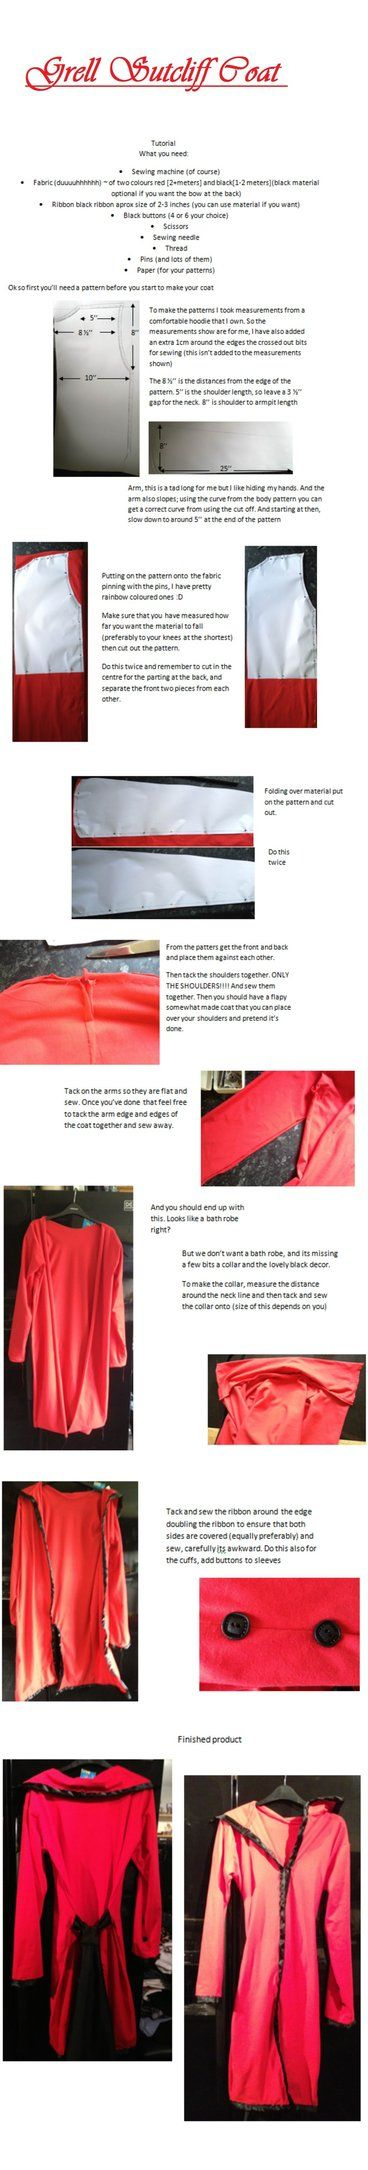 Grell Sutcliff Coat tutorial by kayles-jabberwock on Deviantart.  This will be helpful in case I can't find a jacket to modify.